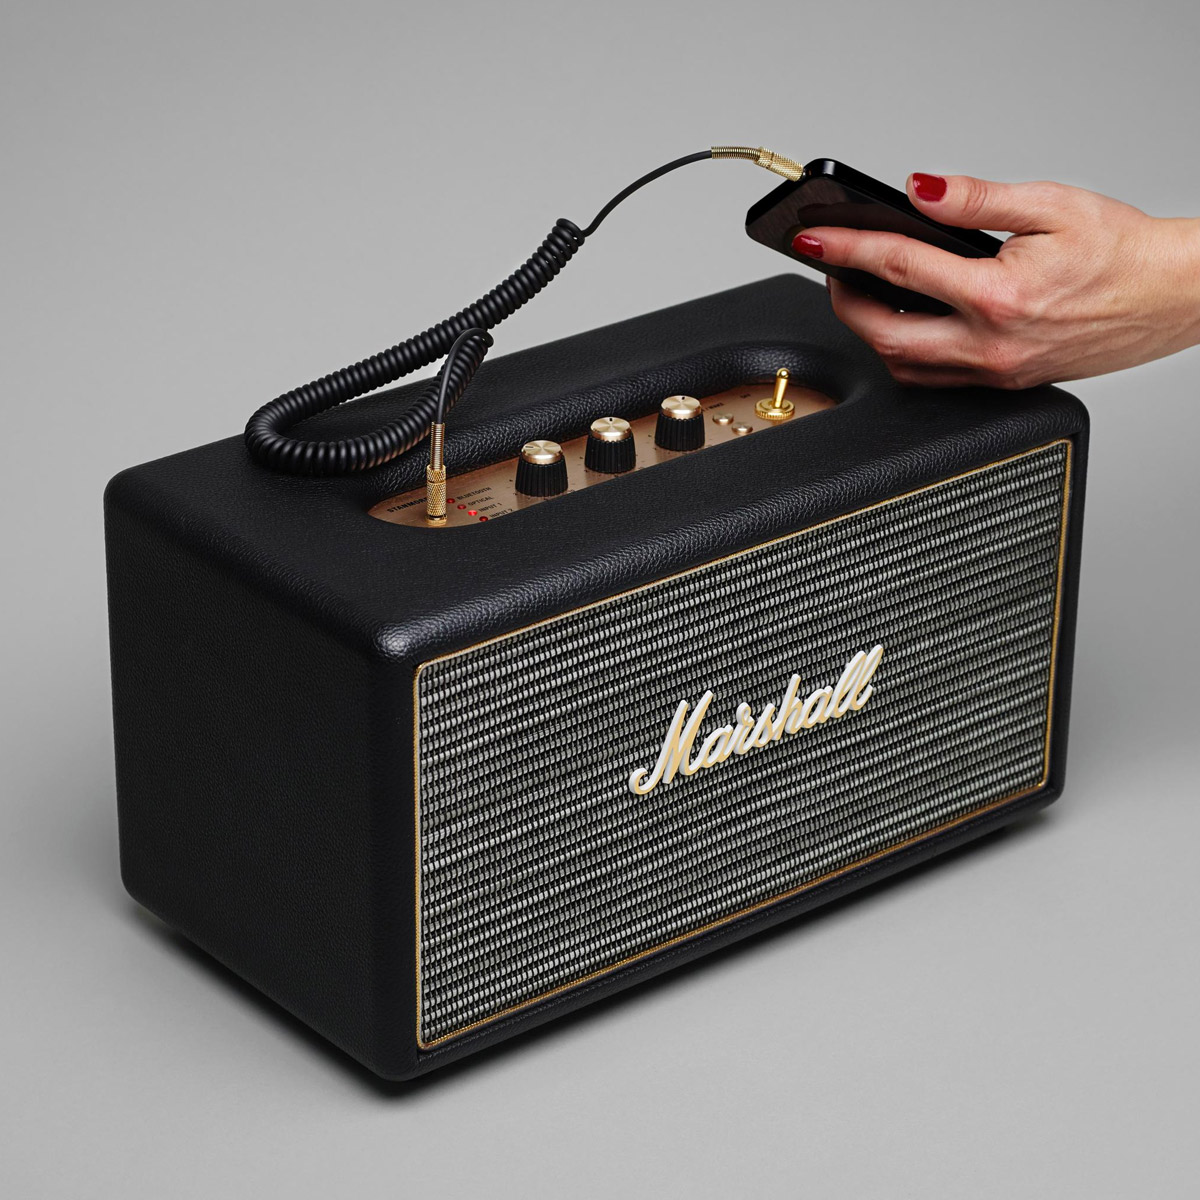 Marshall Stanmore - Wireless Bluetooth Speaker - The Green